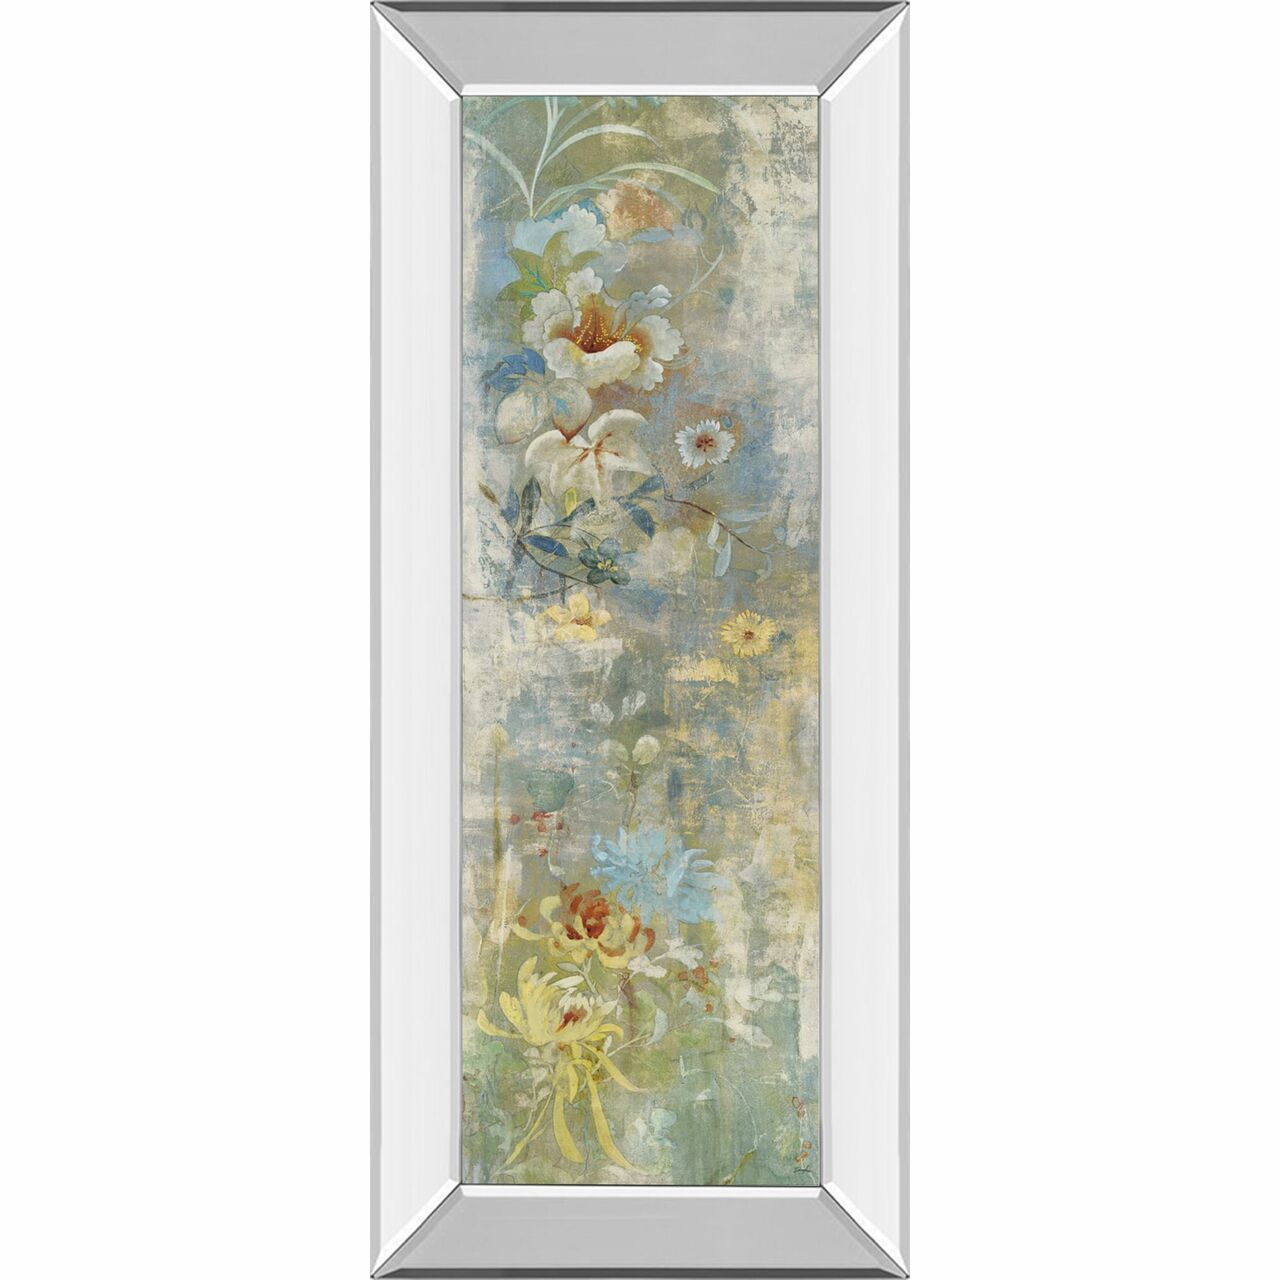 Adorn your walls with this amazing wall decoration that will surely stand-out in any living space. This gorgeous decoration is elegantly framed for your living room or family room. Each piece is meticulously crafted for long-lasting durability and beauty. Features: Artistic piece and wall decorationGarden Haiku l framed wall art by Douglas Made in the USA Scratch resistant MDF Ready to hang with all the hardware pre-attachedRecommended for indoor use Dimensions: 42